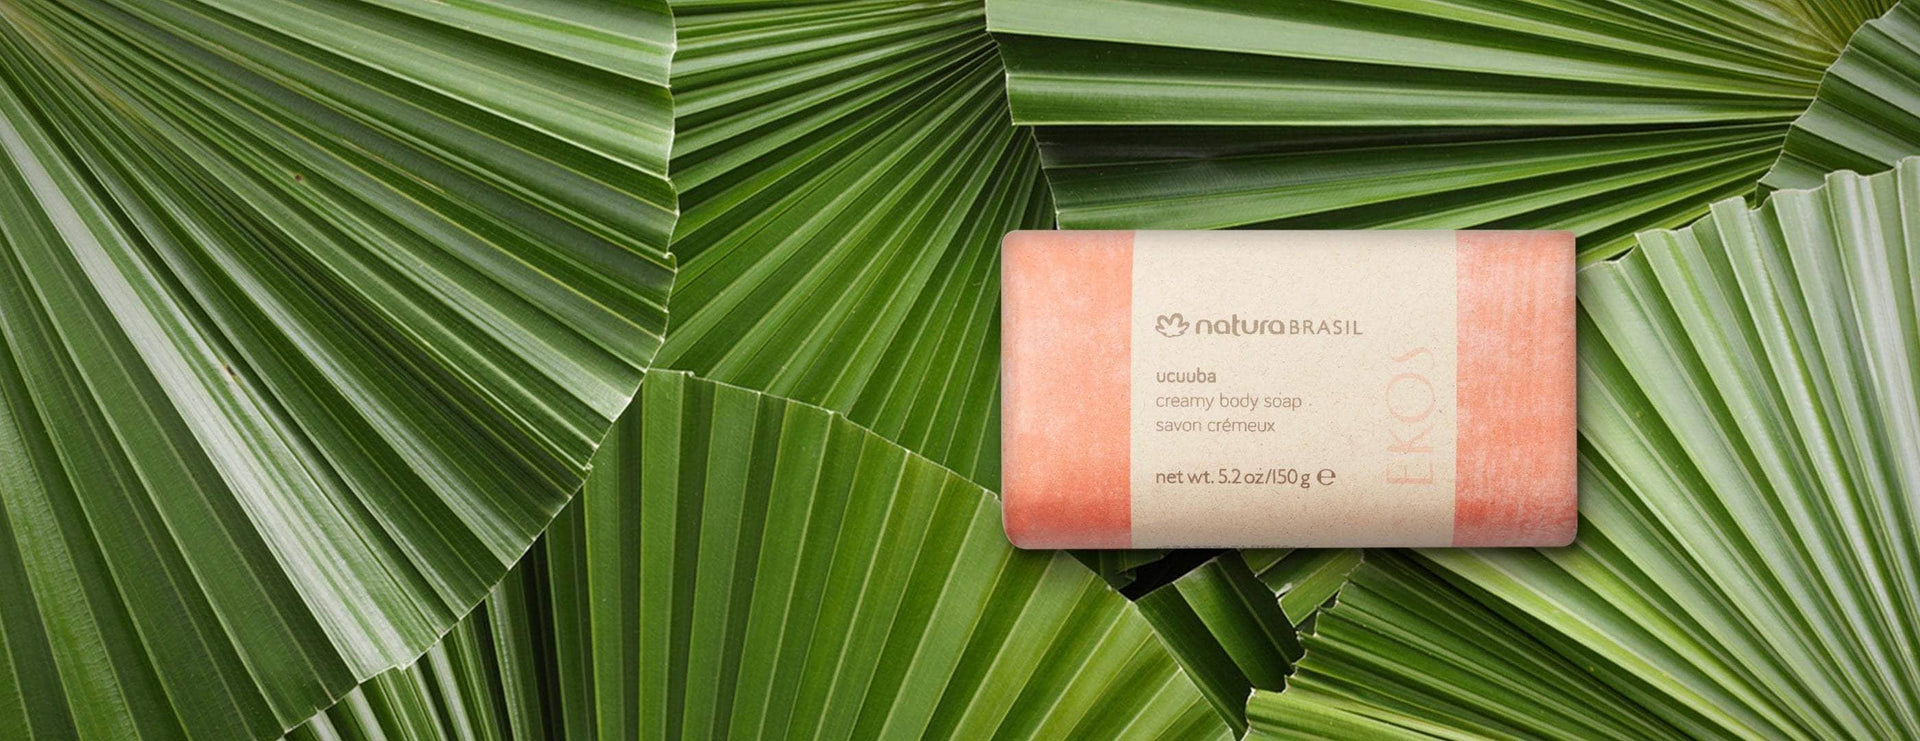 Ucuuba Creamy Soap Bar